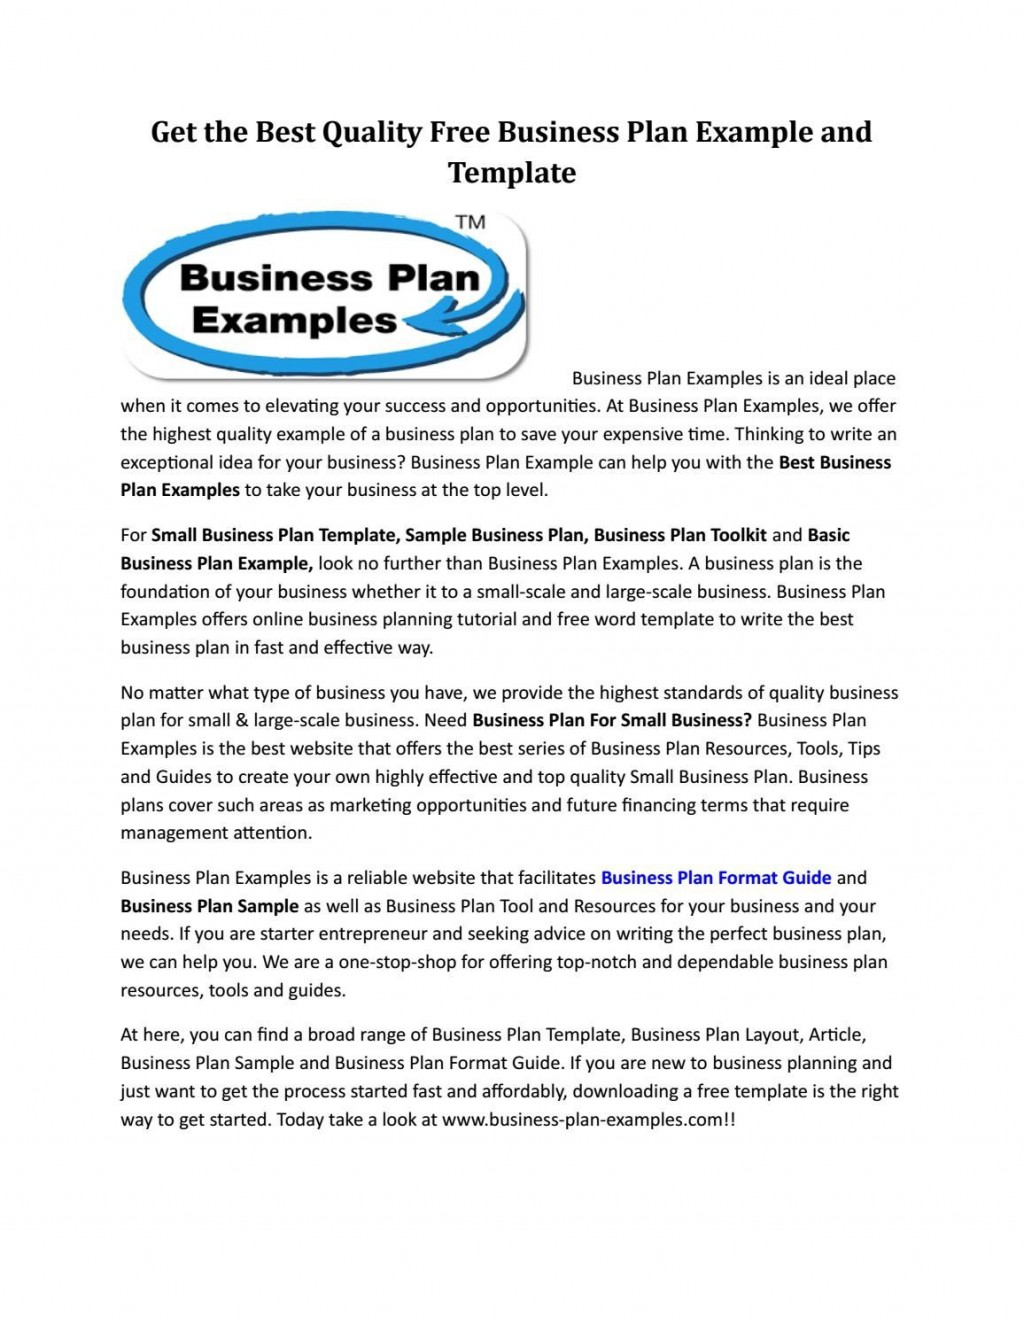 009 Awful Best Busines Plan Template Picture  Ppt Free DownloadLarge